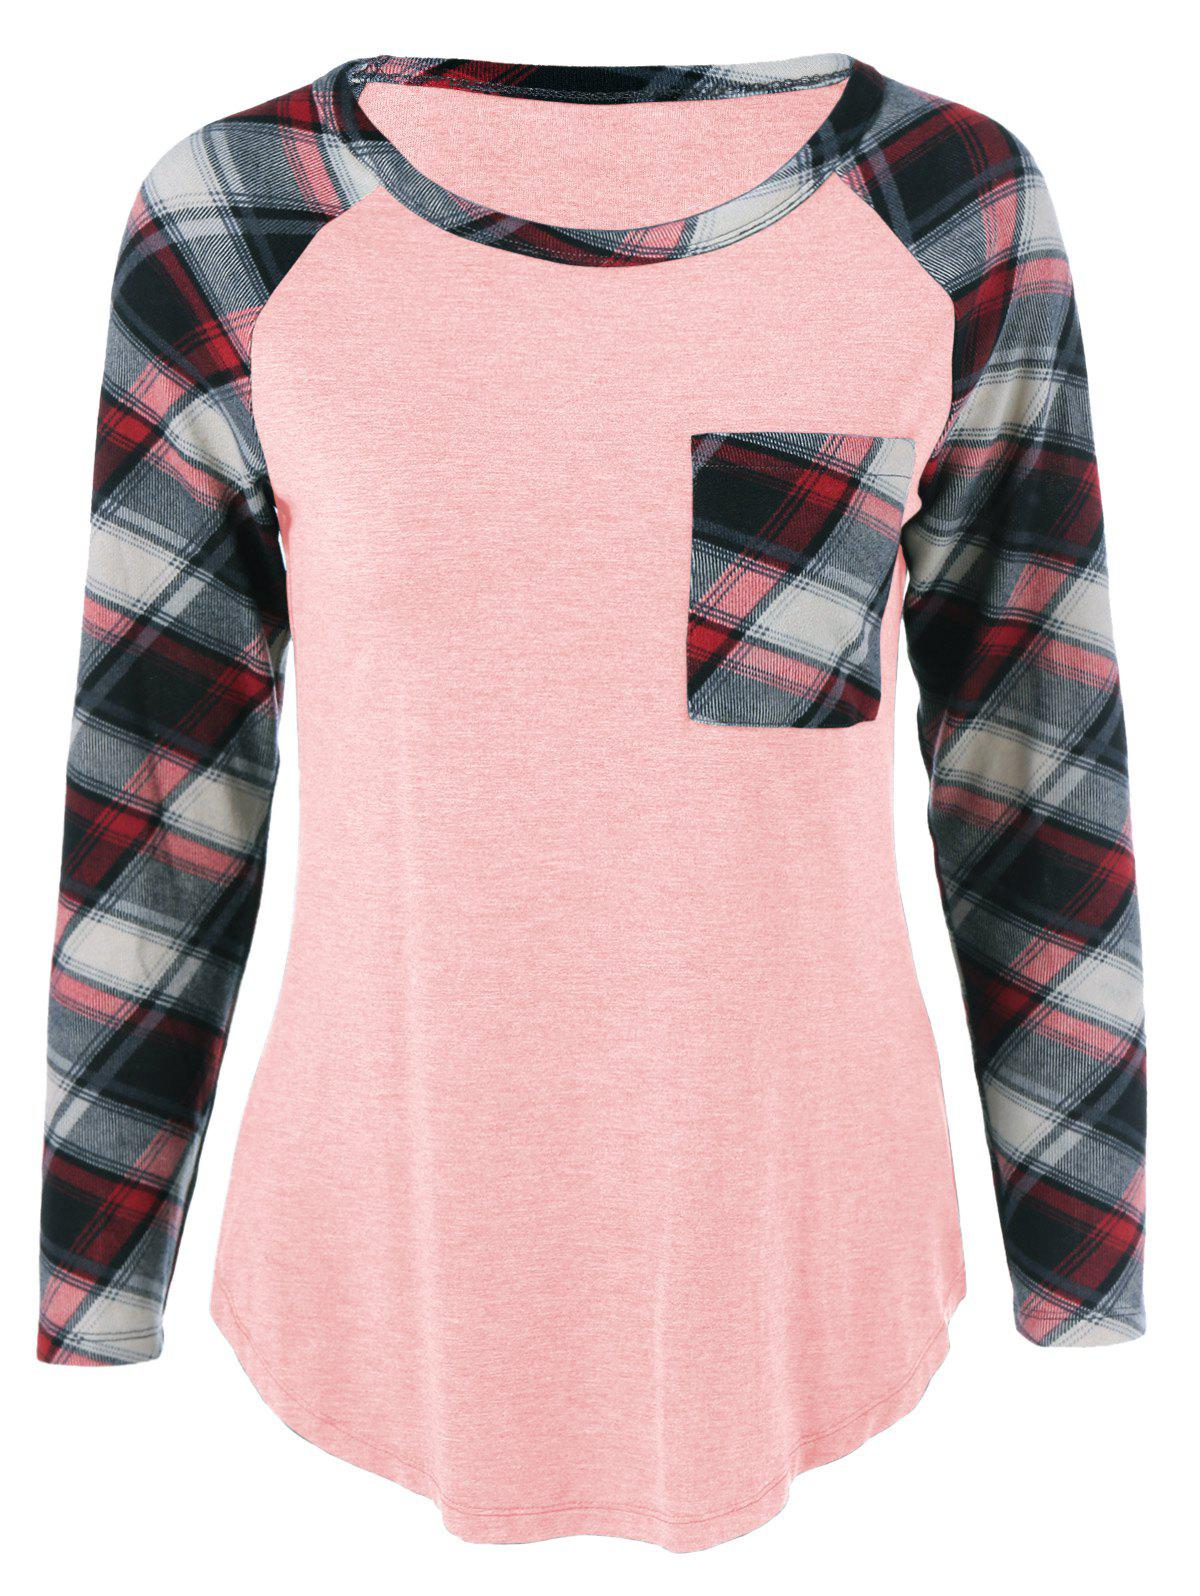 Plus Size One Pocket Plaid Long Sleeve T-ShirtWOMEN<br><br>Size: 2XL; Color: SHALLOW PINK; Material: Cotton Blends,Spandex; Shirt Length: Long; Sleeve Length: Full; Collar: Scoop Neck; Style: Casual; Season: Fall,Spring,Summer; Pattern Type: Plaid; Weight: 0.2460kg; Package Contents: 1 x T-Shirt;